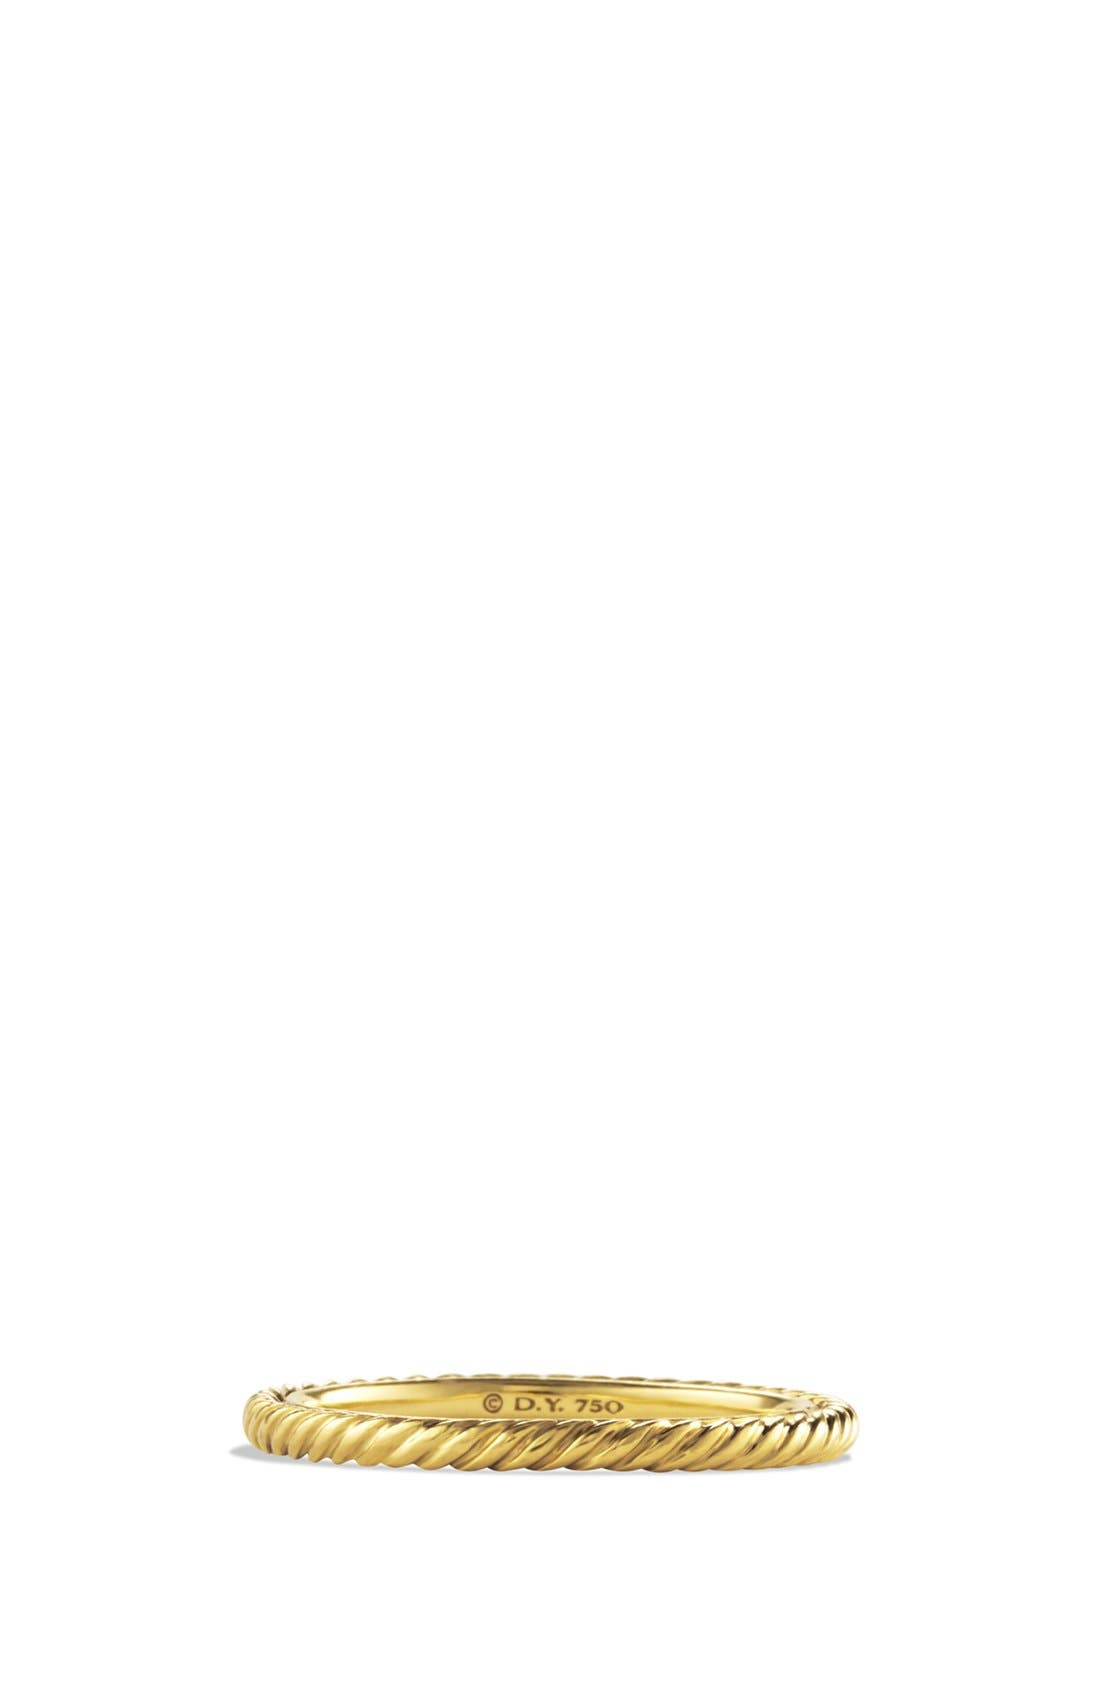 Alternate Image 1 Selected - David Yurman 'Cable' Band Ring in Gold